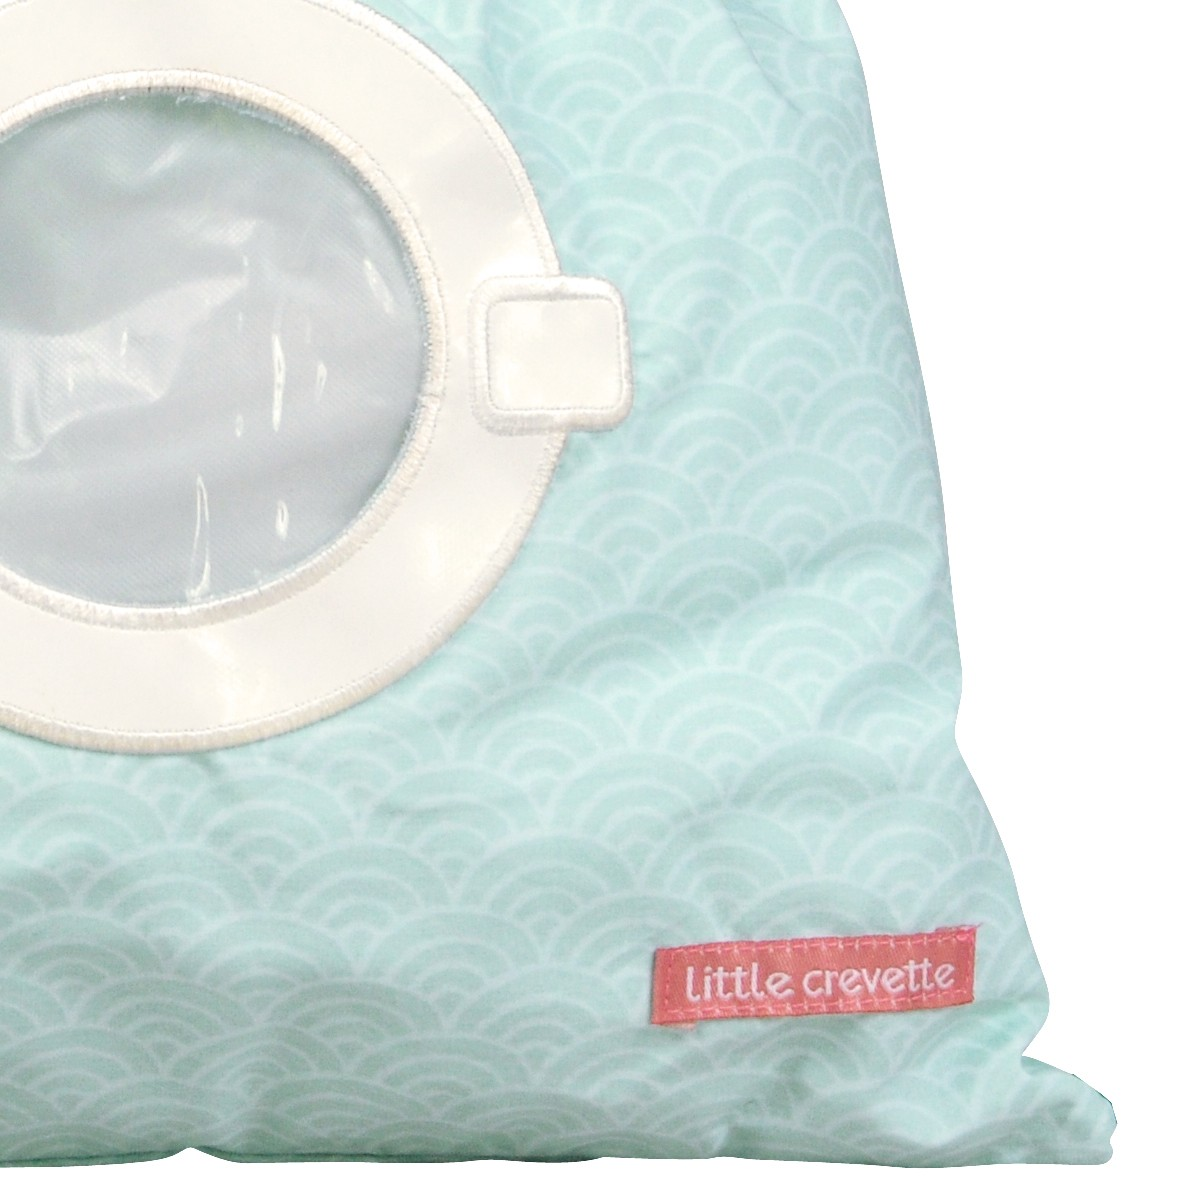 À Laver Crevette Sac Machine Original BleuLittle Linge dWrxBQoECe